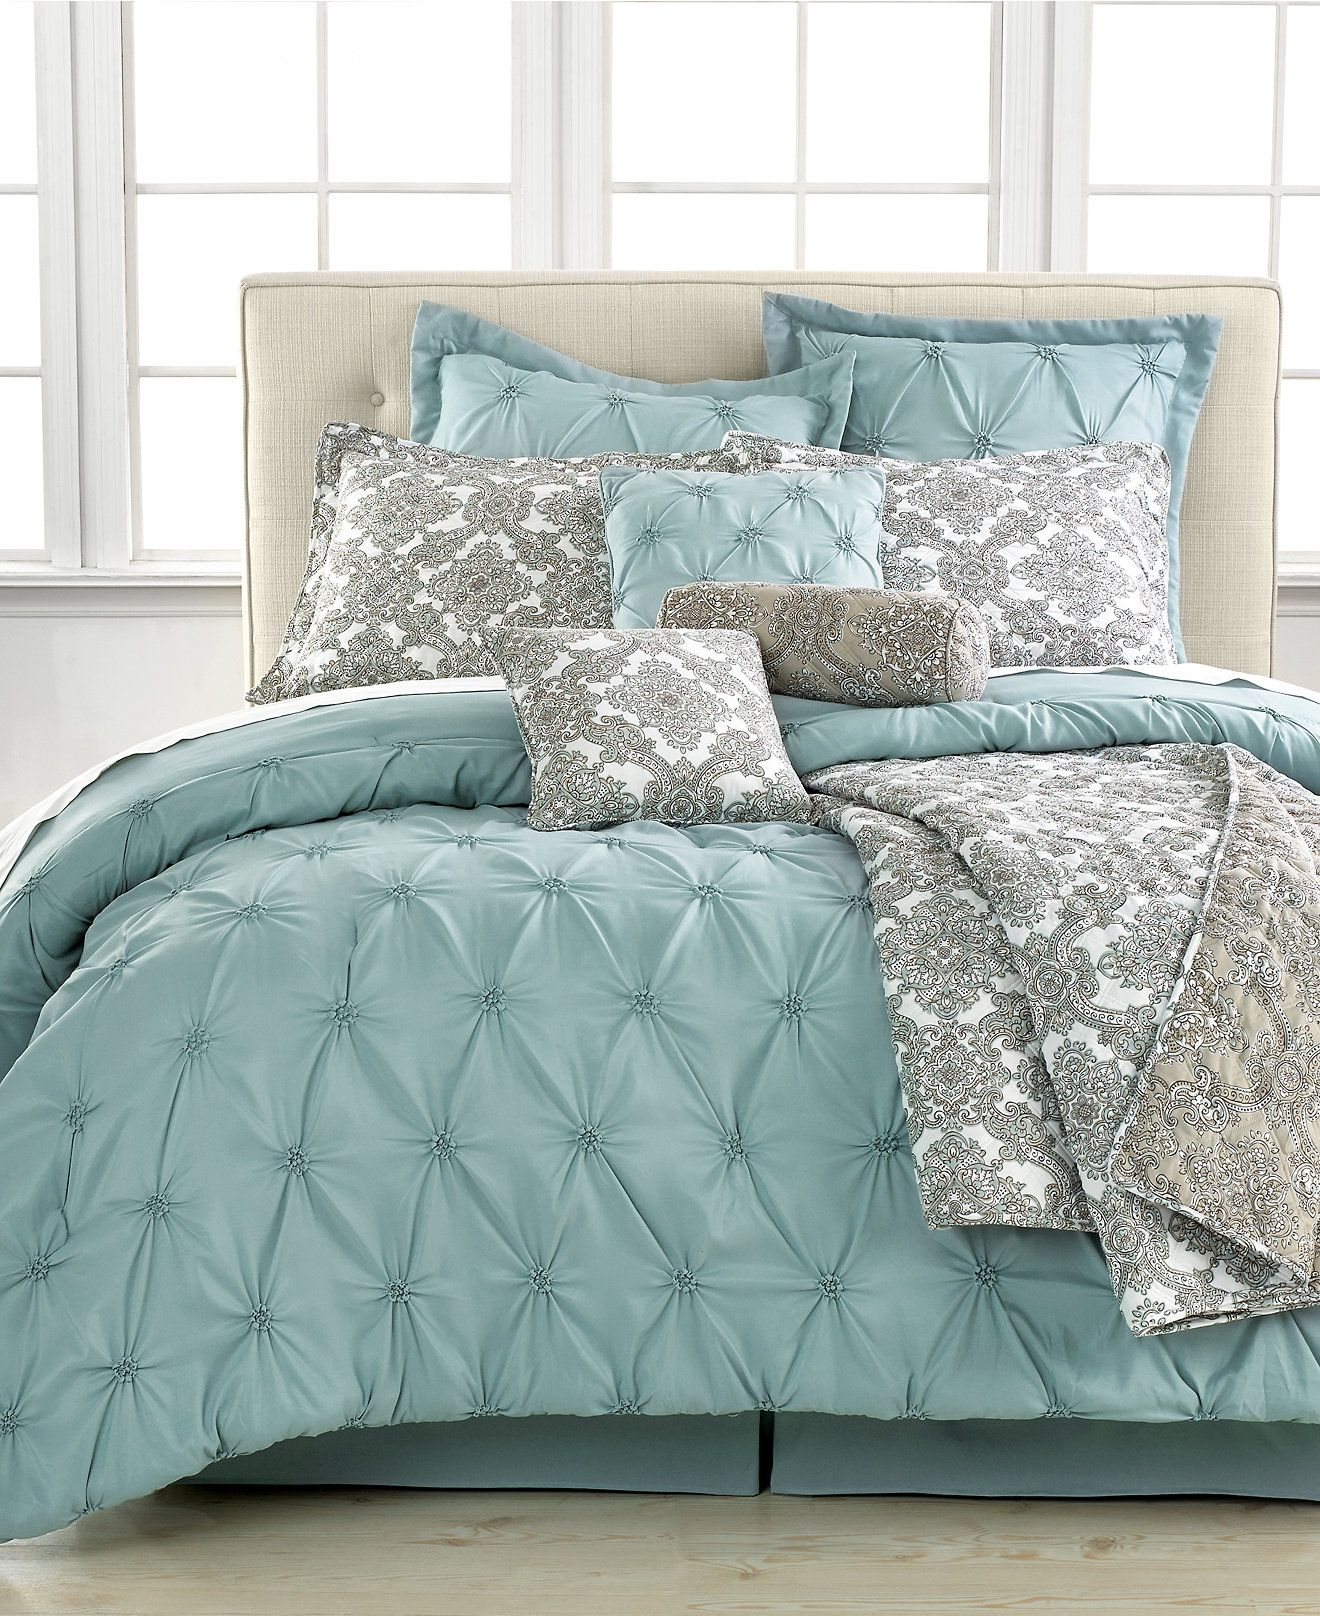 California King Bedroom Comforter Sets